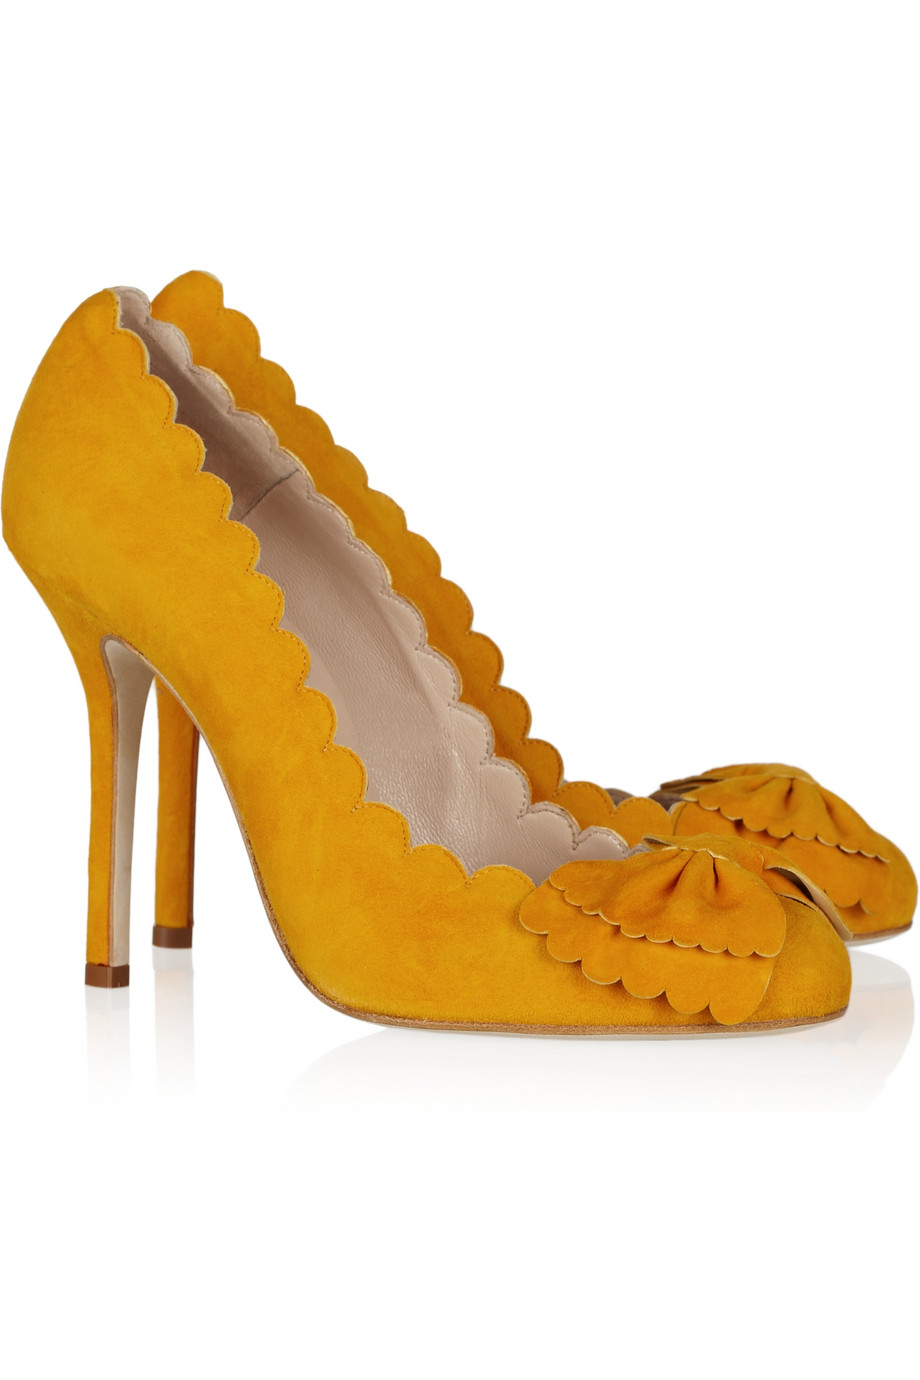 Yellow Mustard Heels - Is Heel